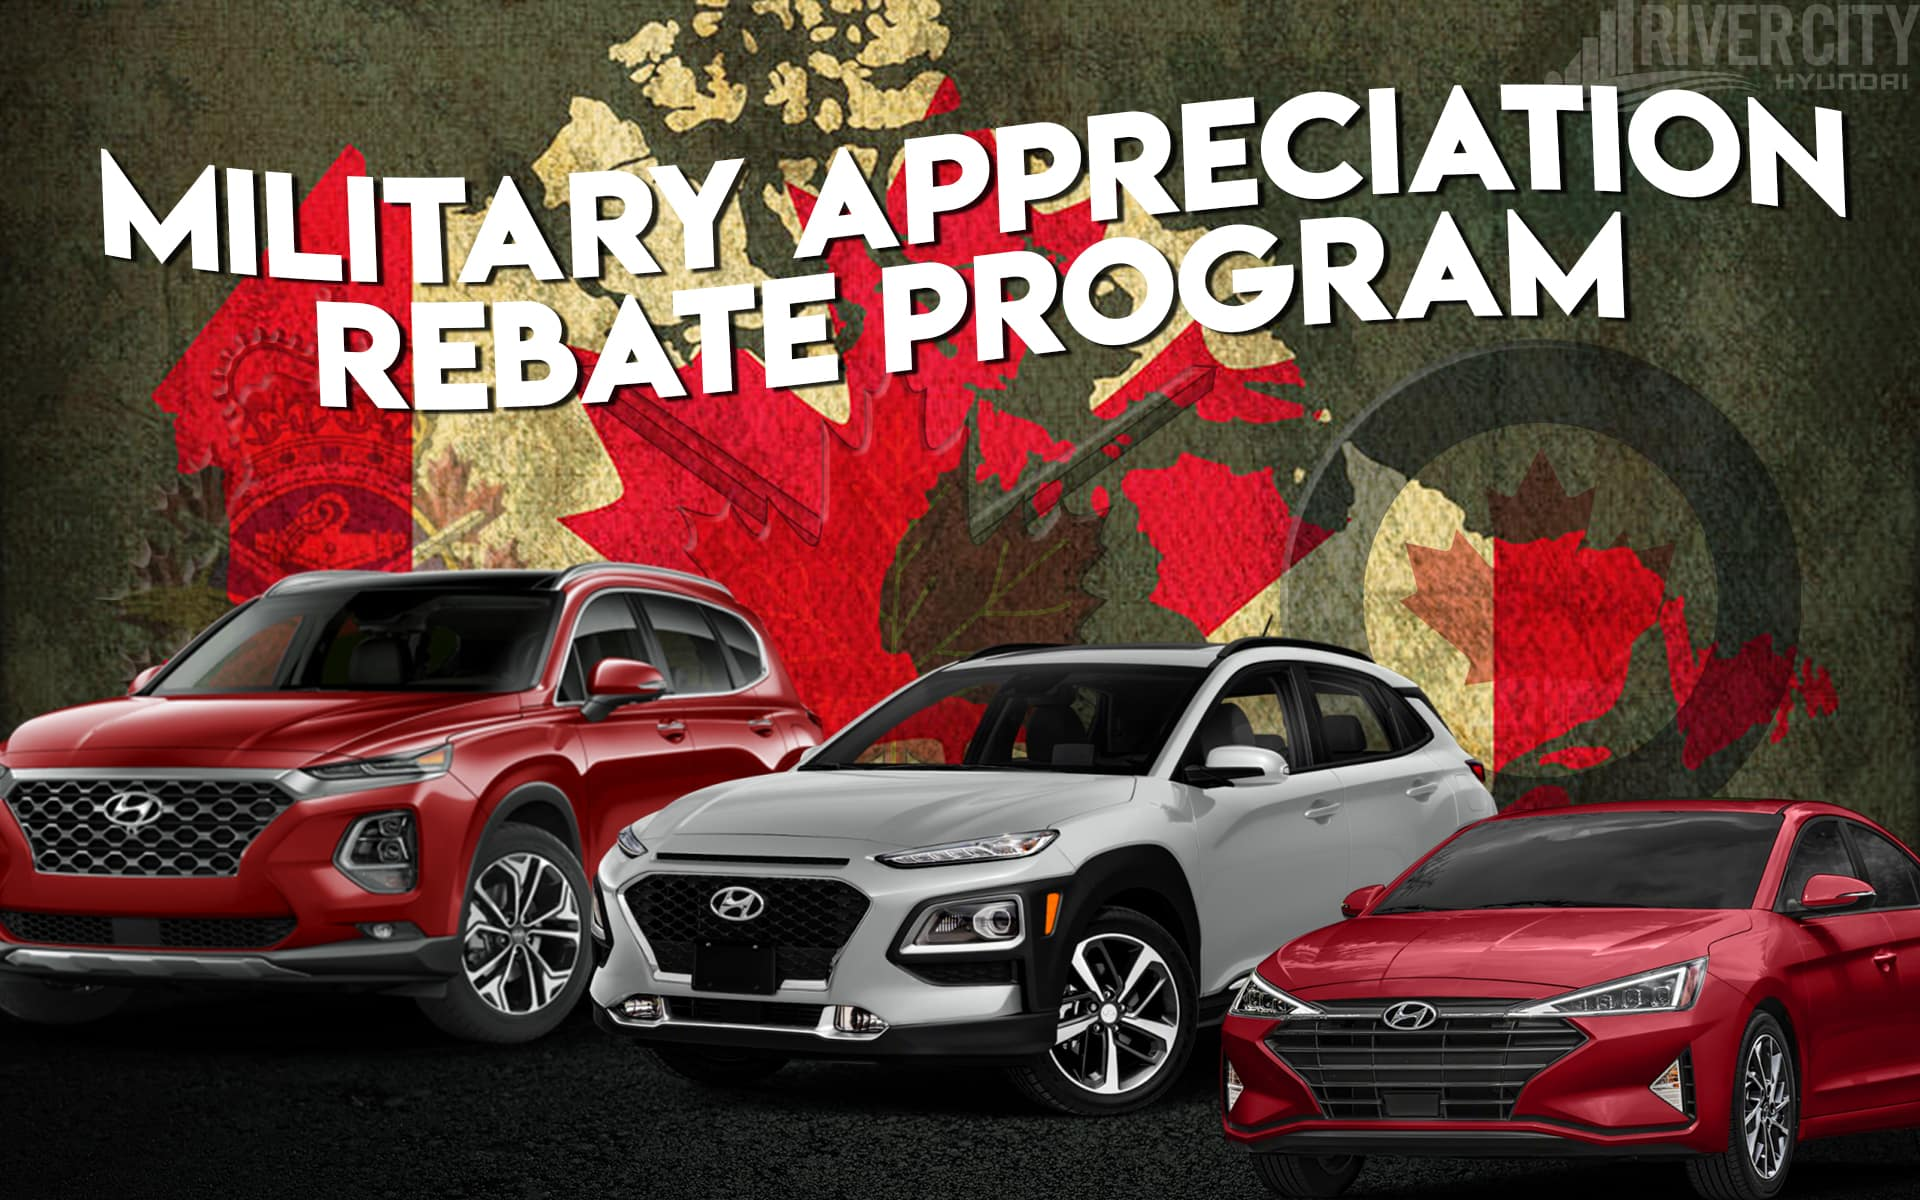 Hyundai Military Appreciation Rebate Program